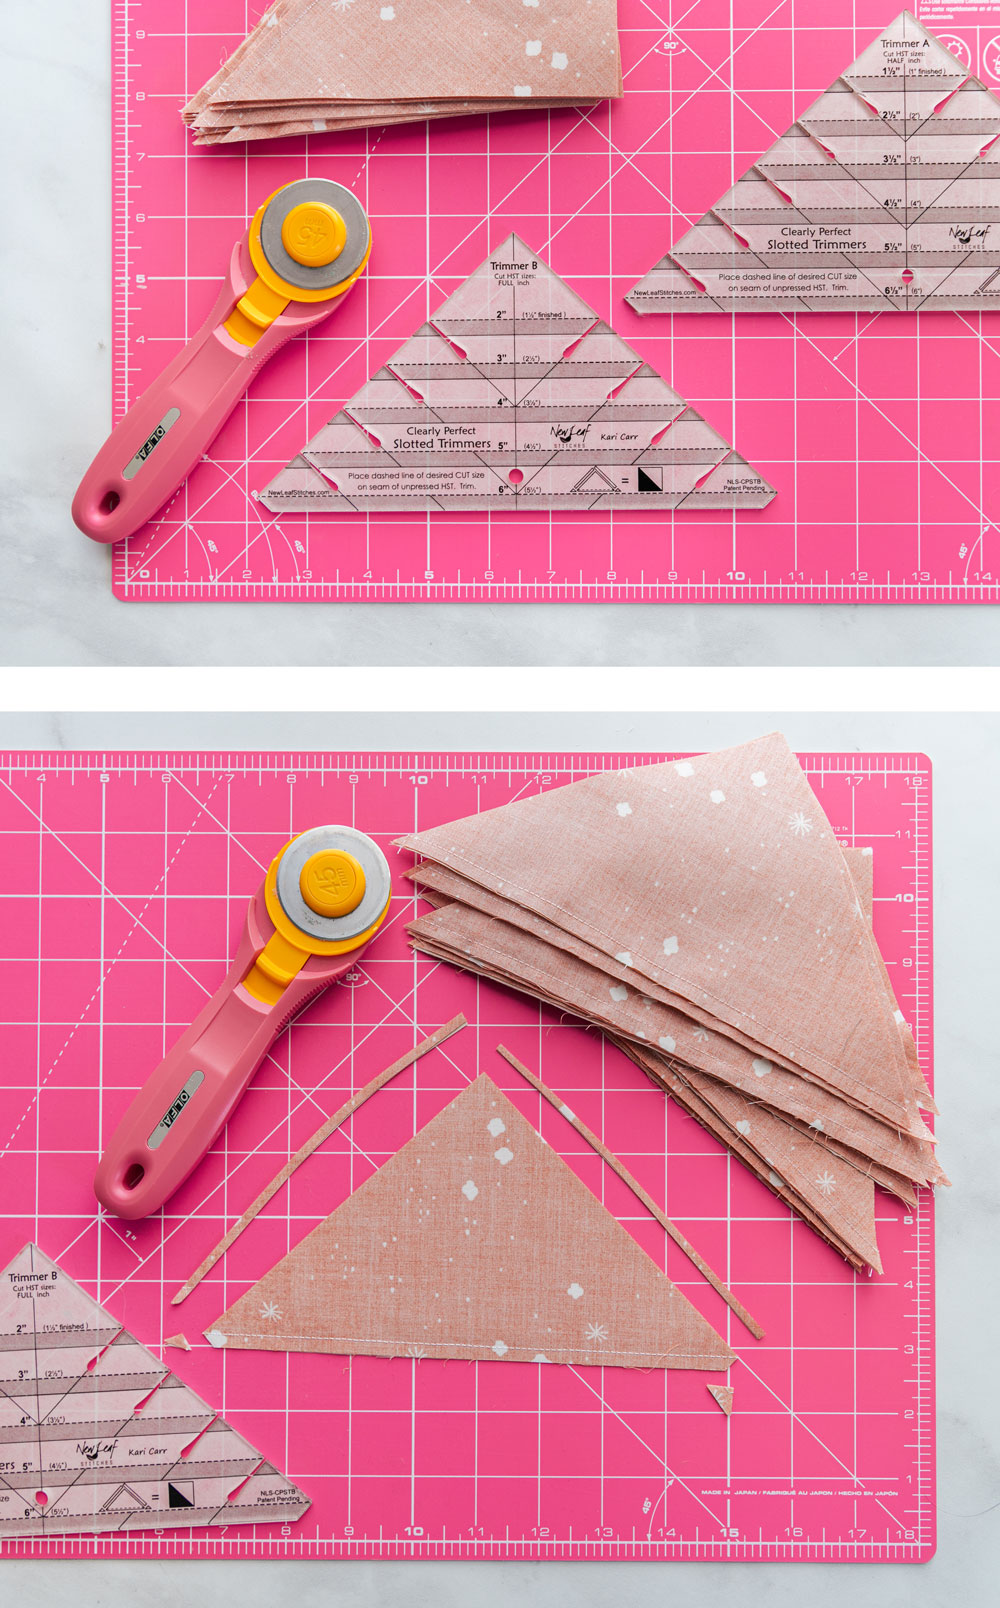 The best tutorial on how to trim half square triangles for quilting! Make perfect HSTs every time with this sewing method. suzyquilts.com #quilting #hst